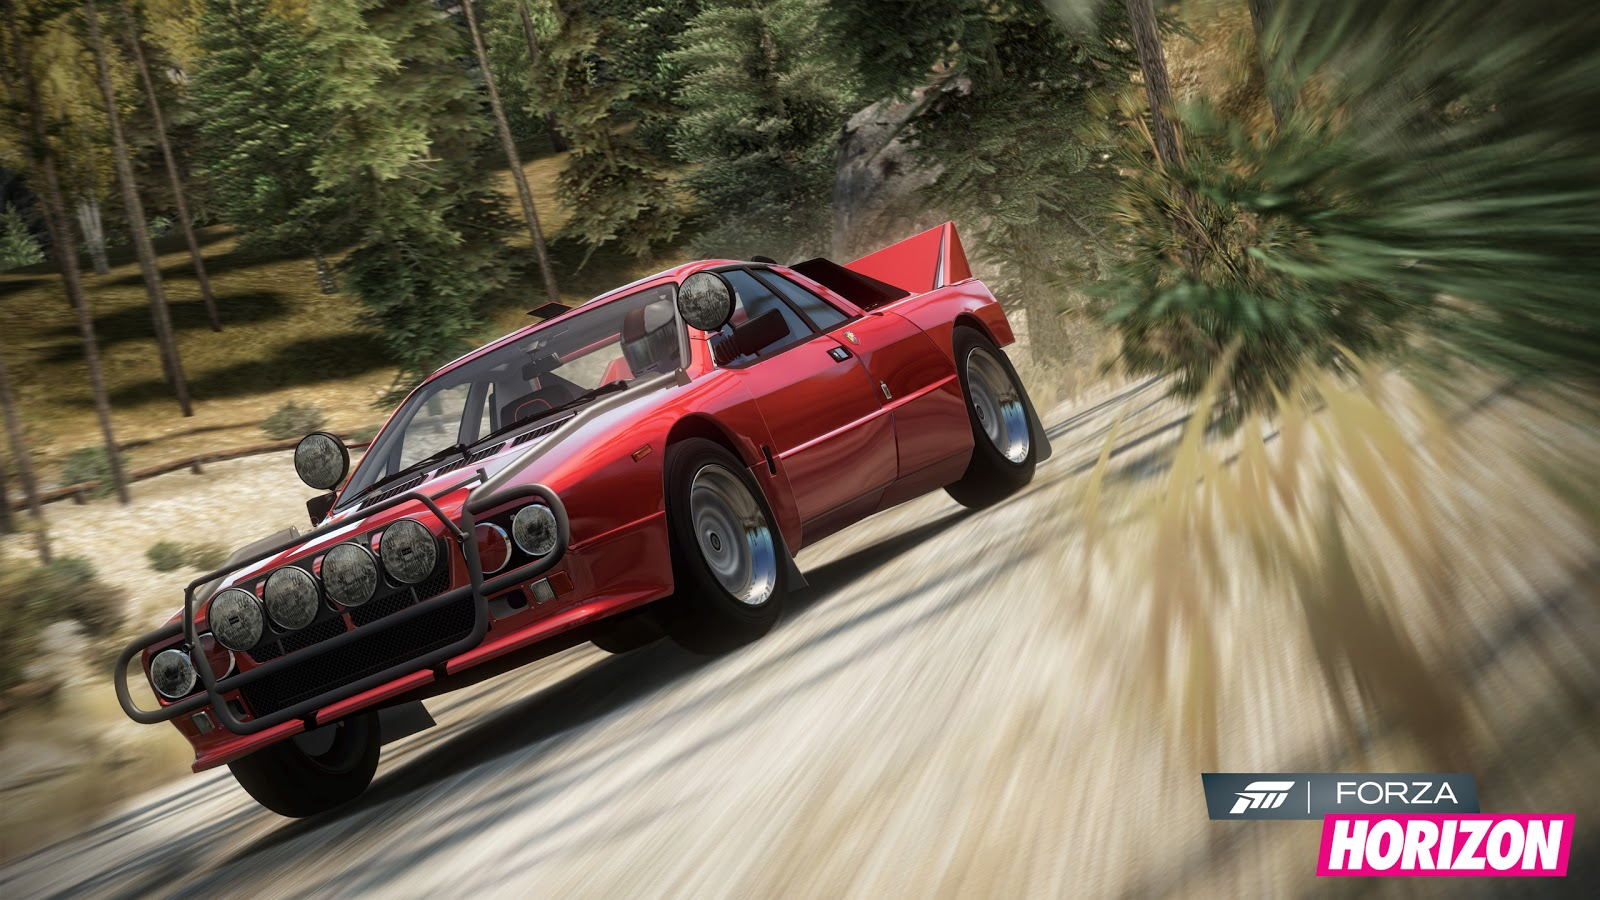 Forza Horizon HD & Widescreen Wallpaper 0.381227667956996